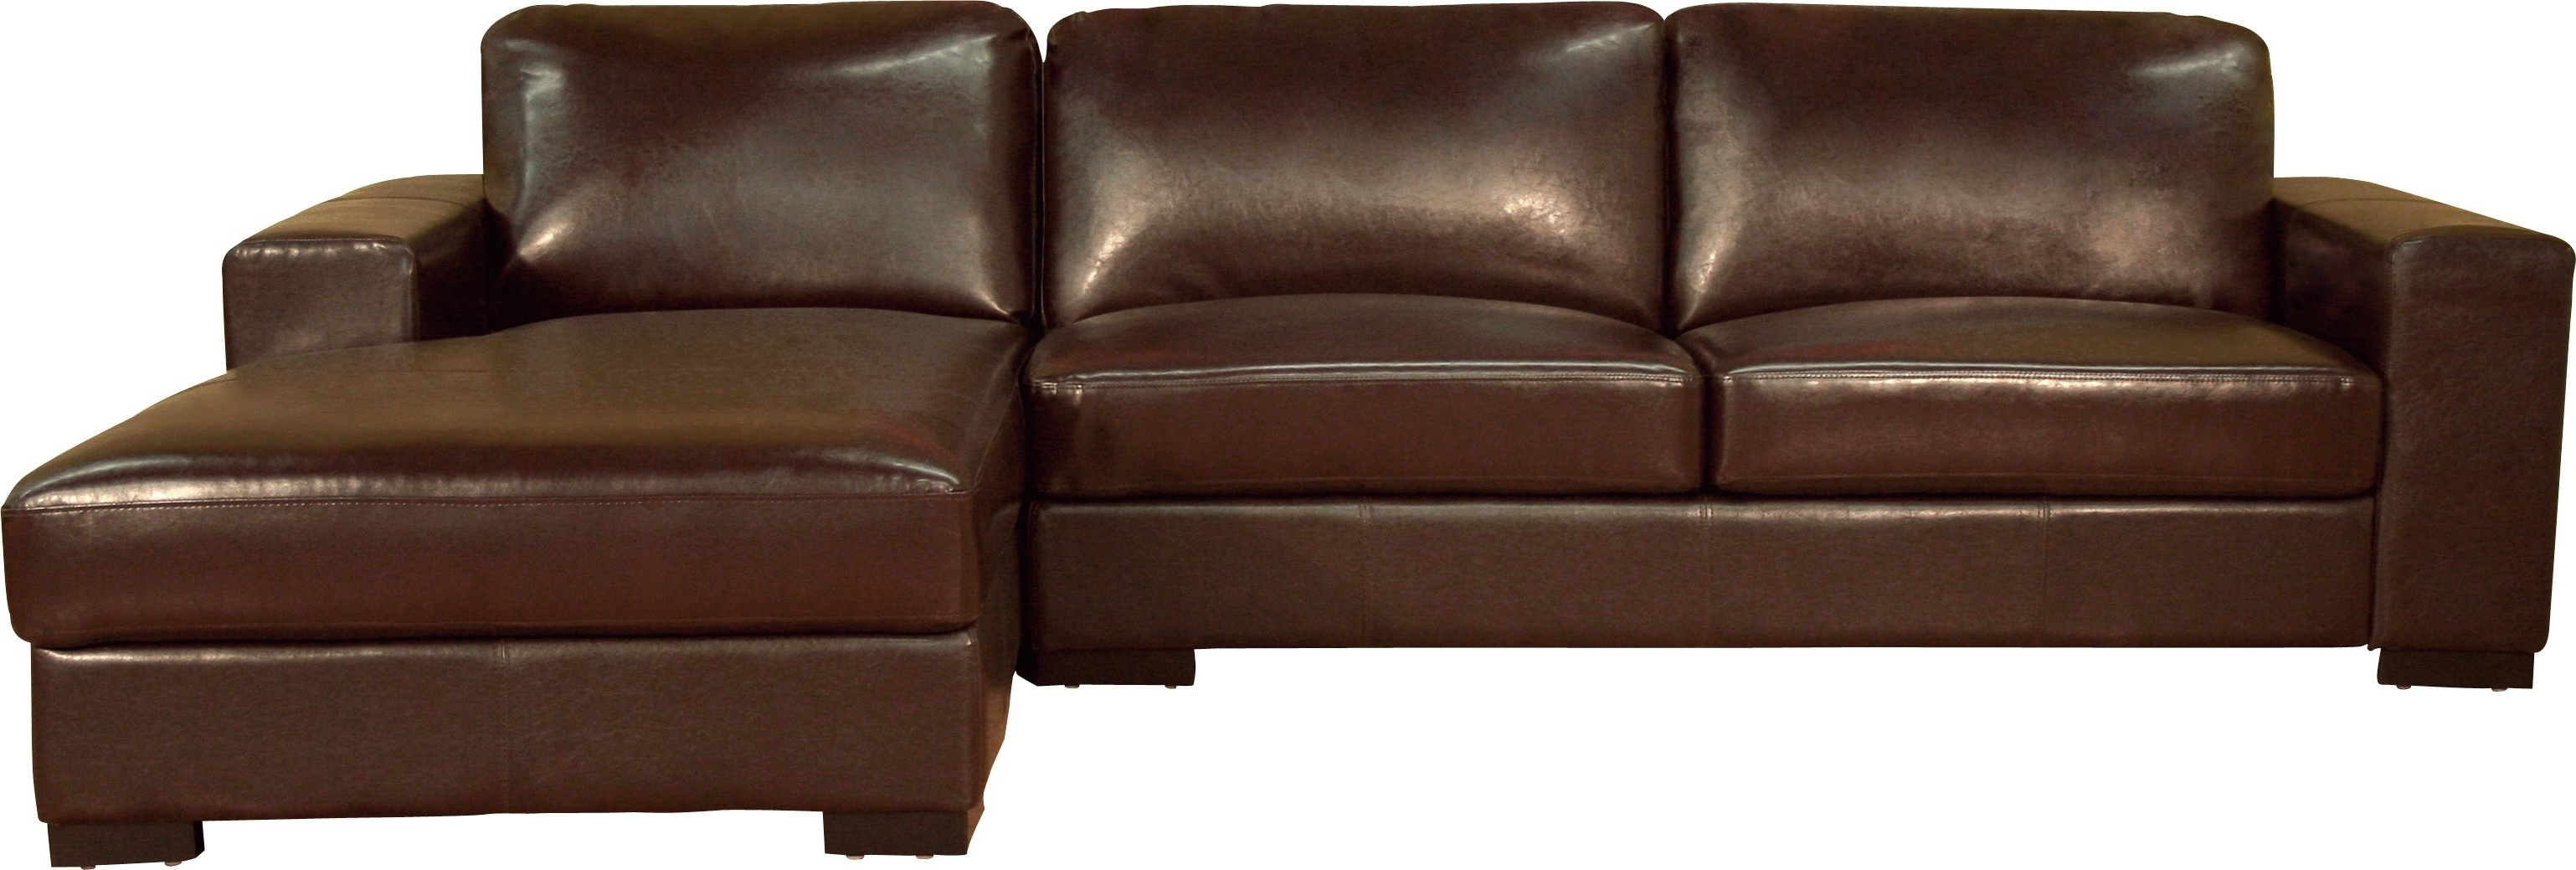 Leather Sofa Chaises Pertaining To Popular Furniture (View 5 of 15)